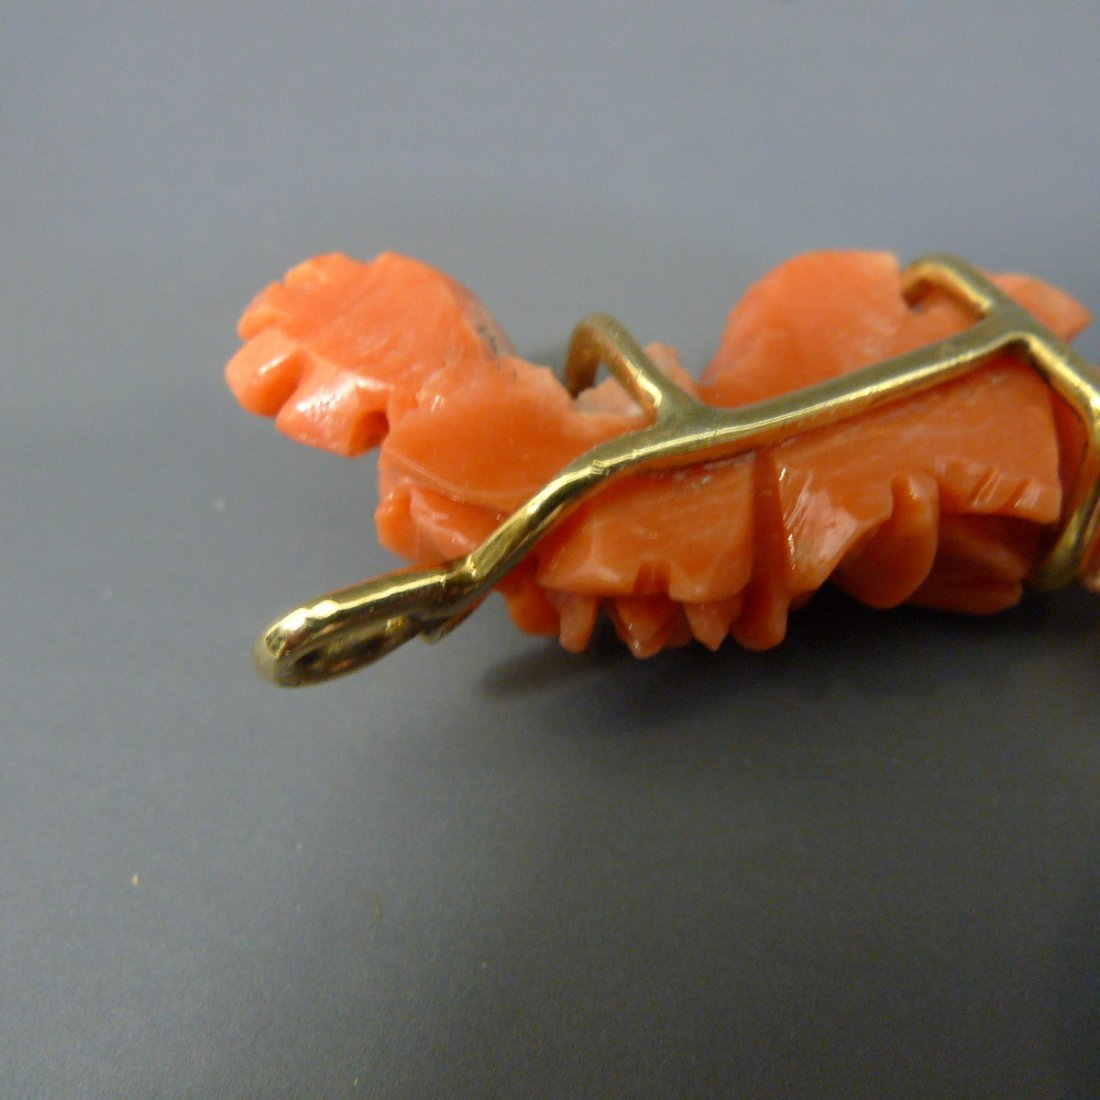 14K SOLID GOLD CARVED NATURAL RED CORAL ROSES PENDANT - 5